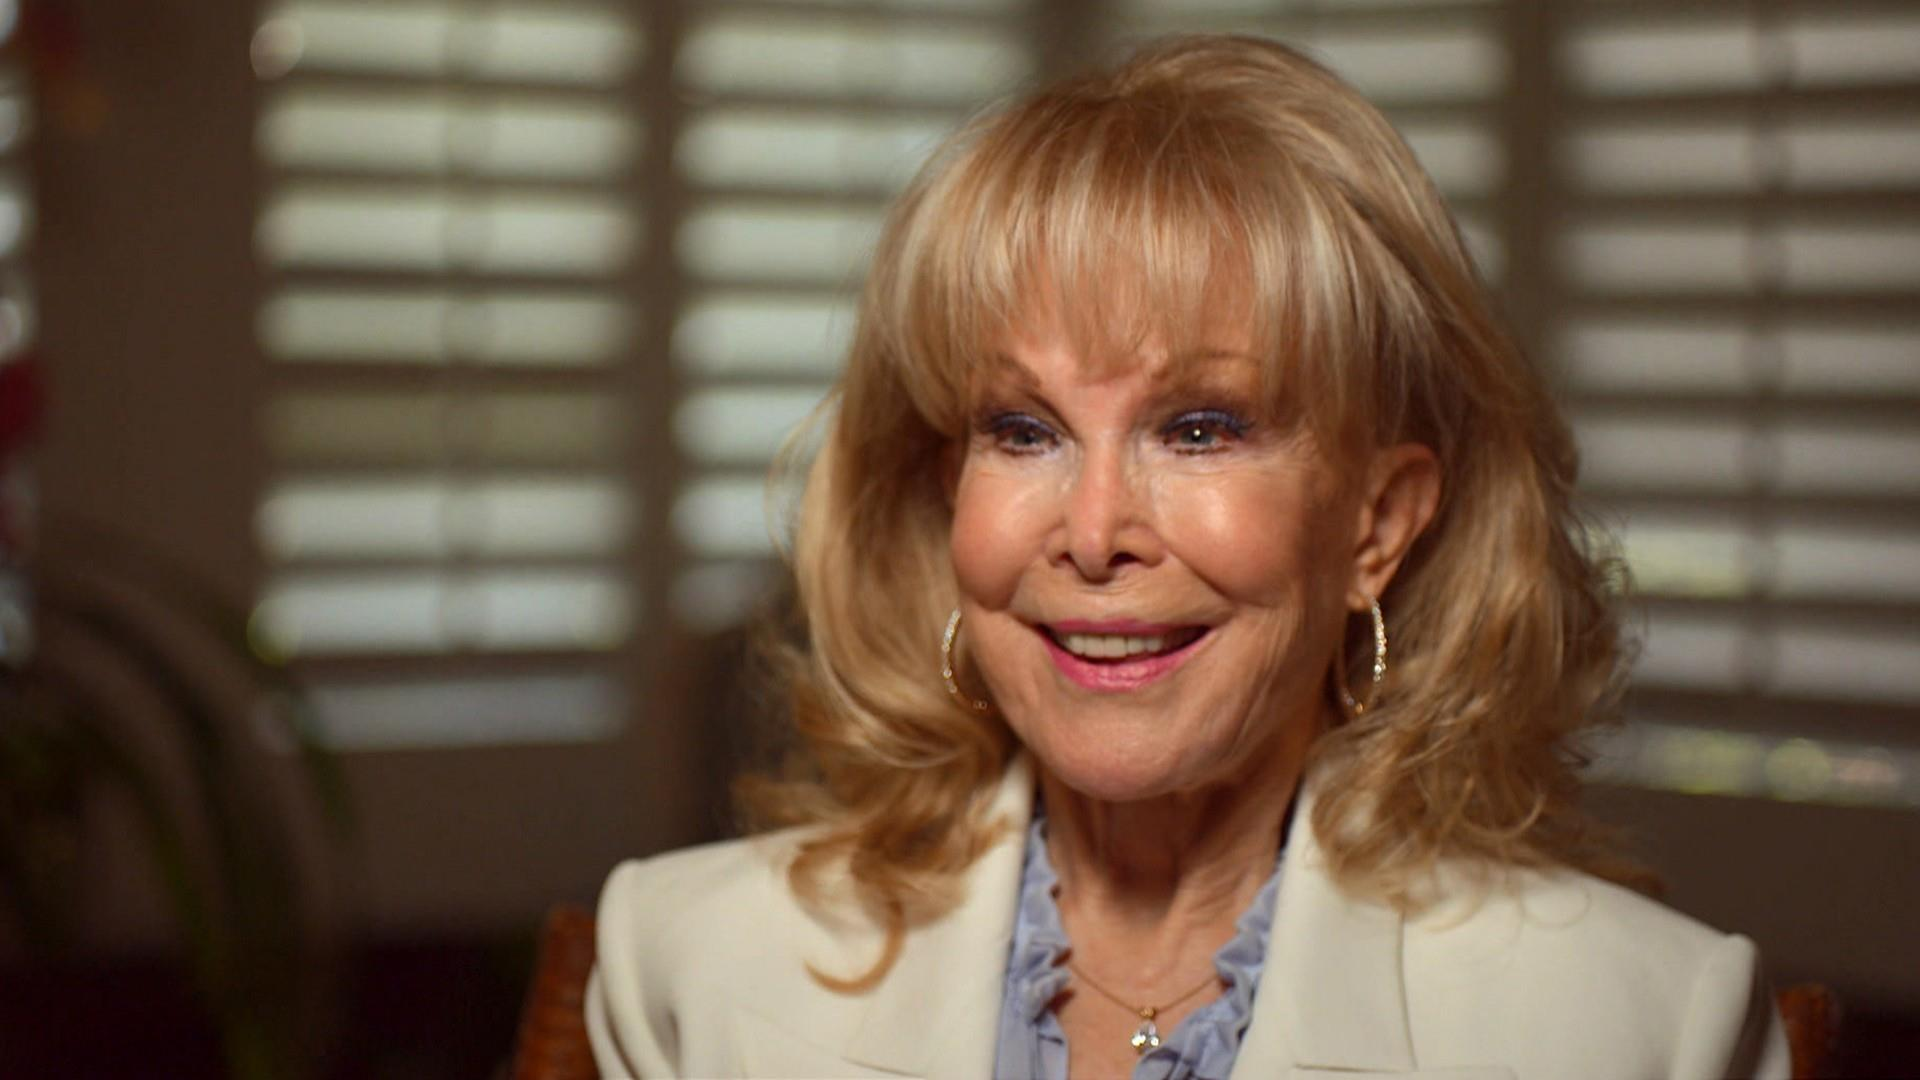 I Dream Of Jeannie Star Barbara Eden Sits Down With Al Roker To